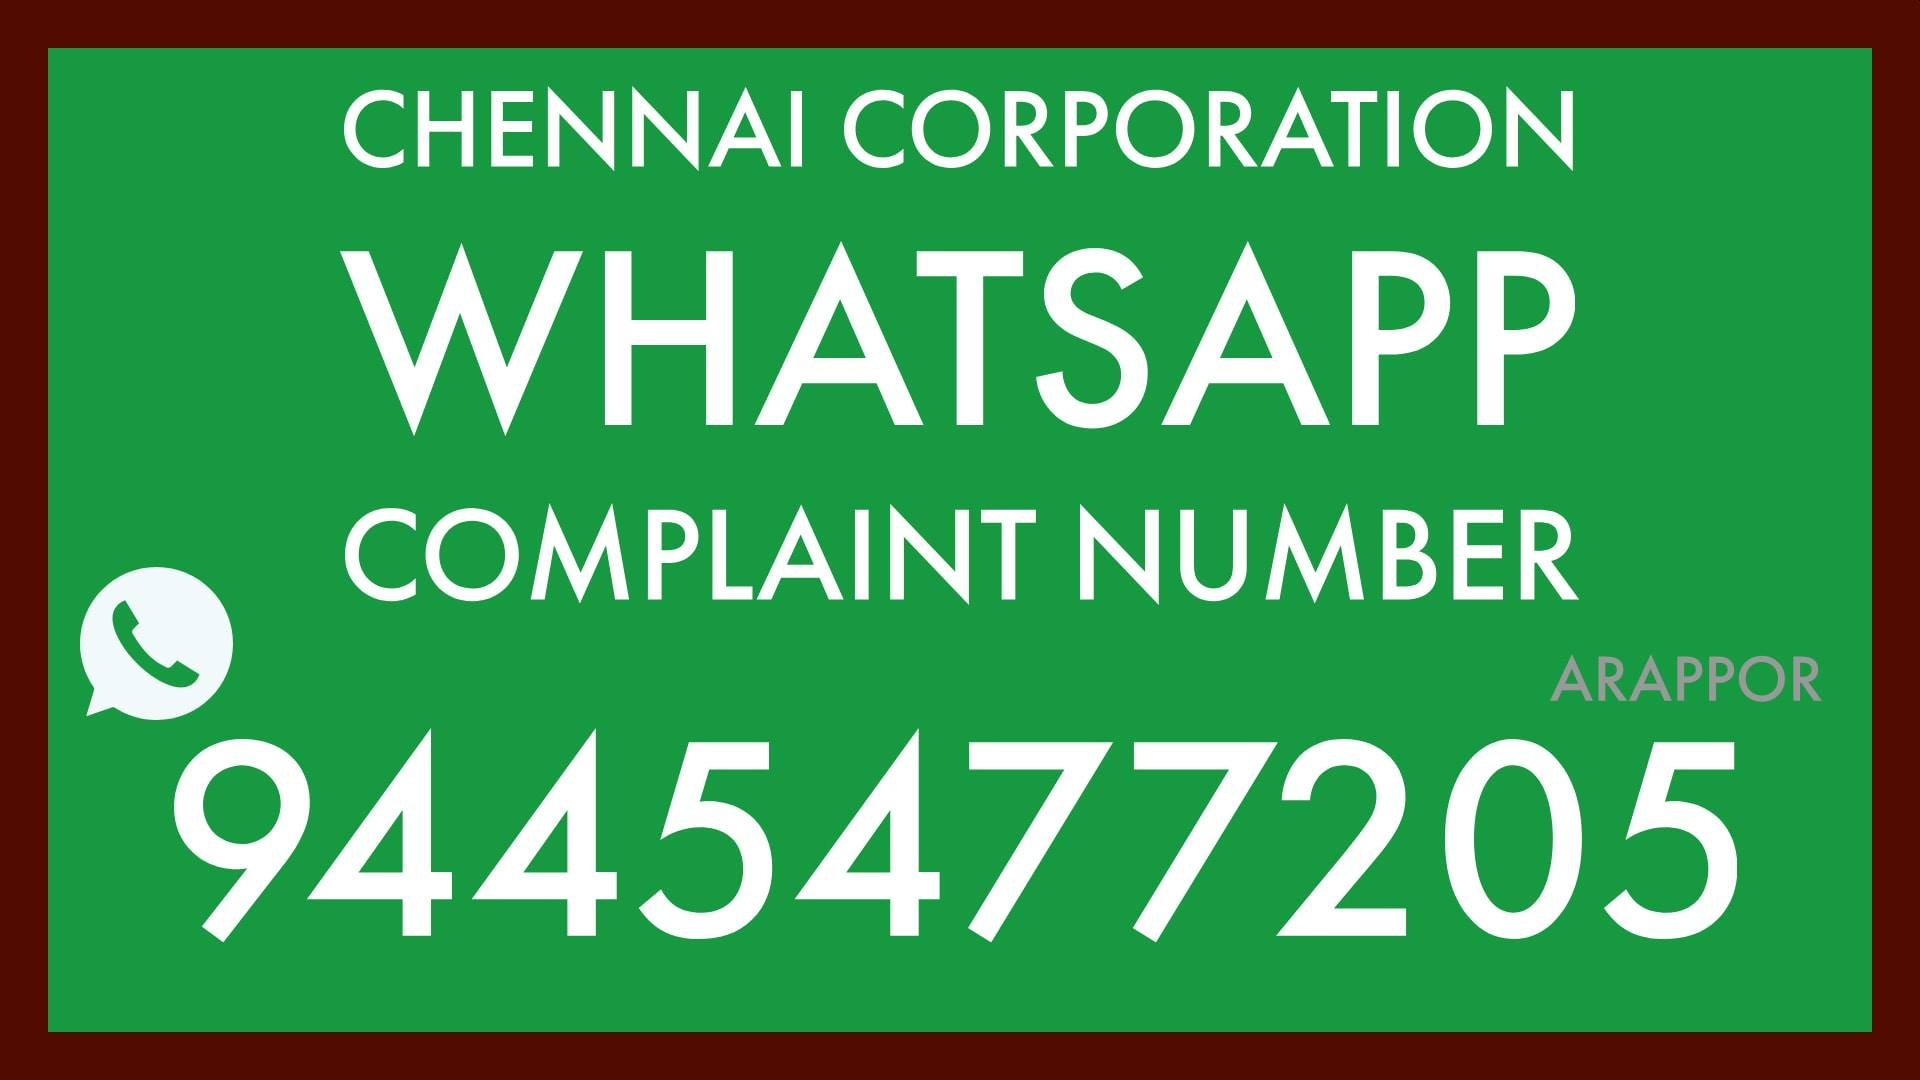 Chennai Corporation's Whatsapp Number for Monsoon related Complaints